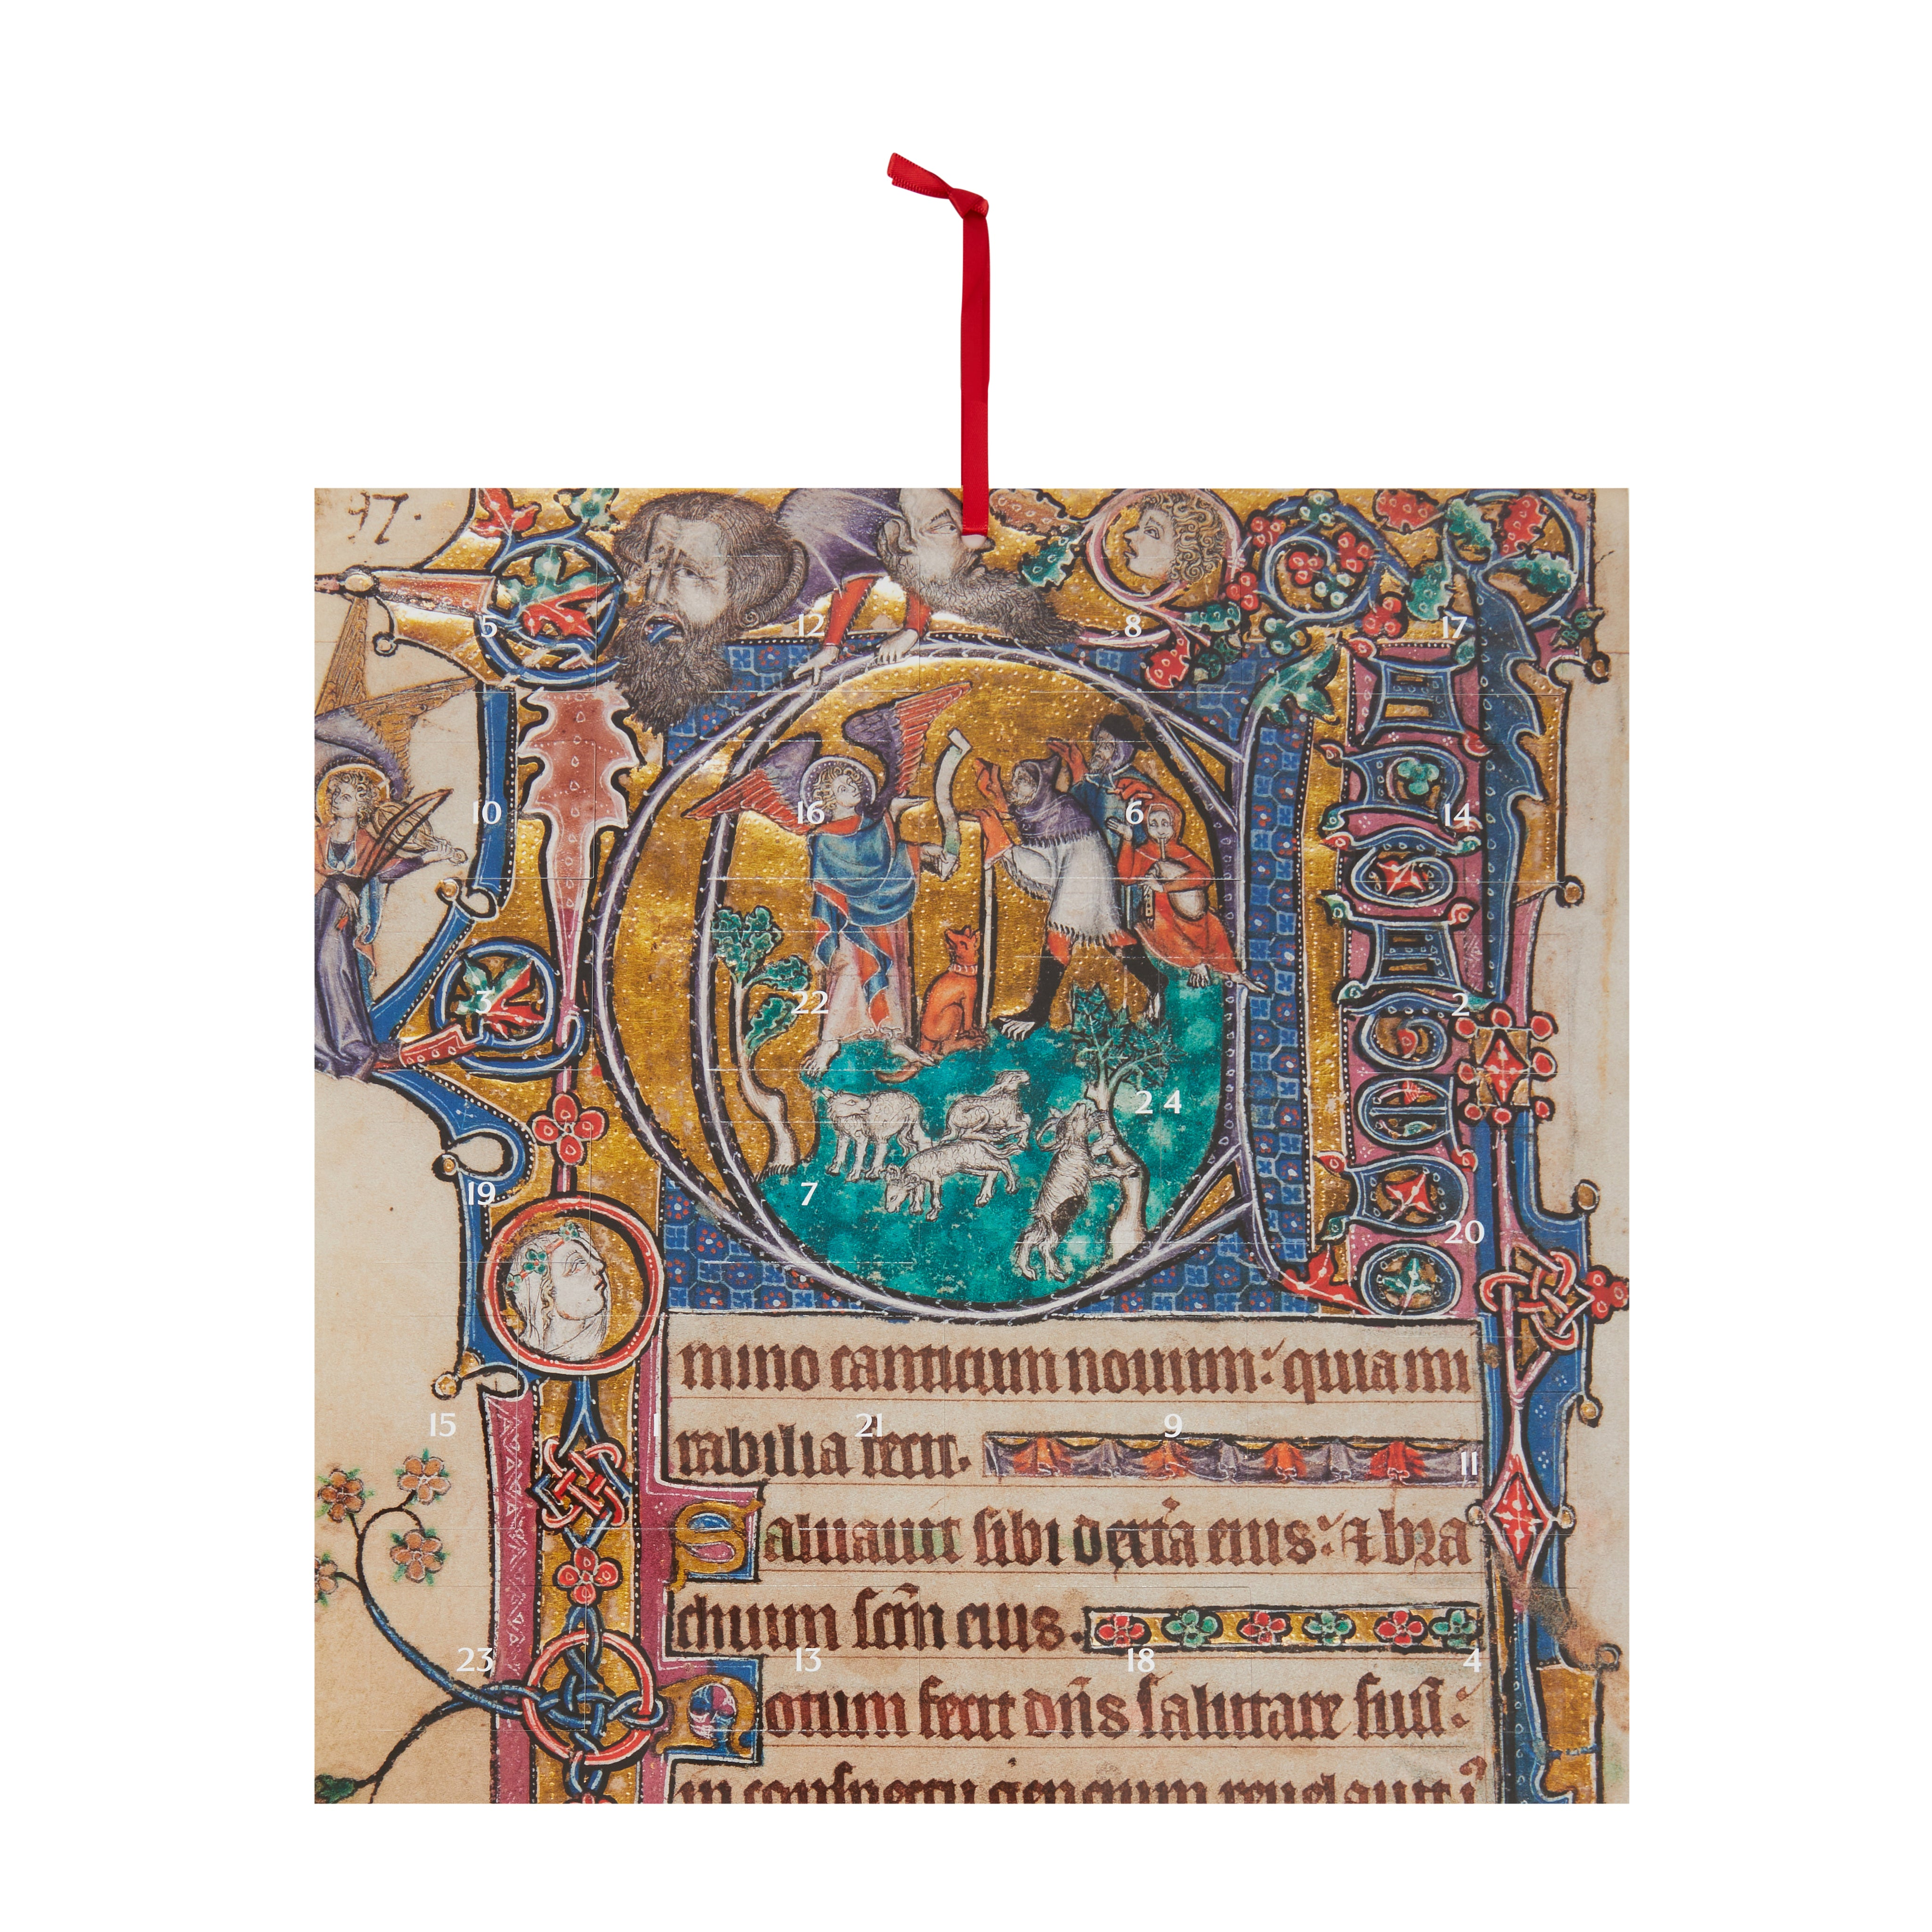 Featured image for the project: The Macclesfield Psalter - Large Advent Calendar